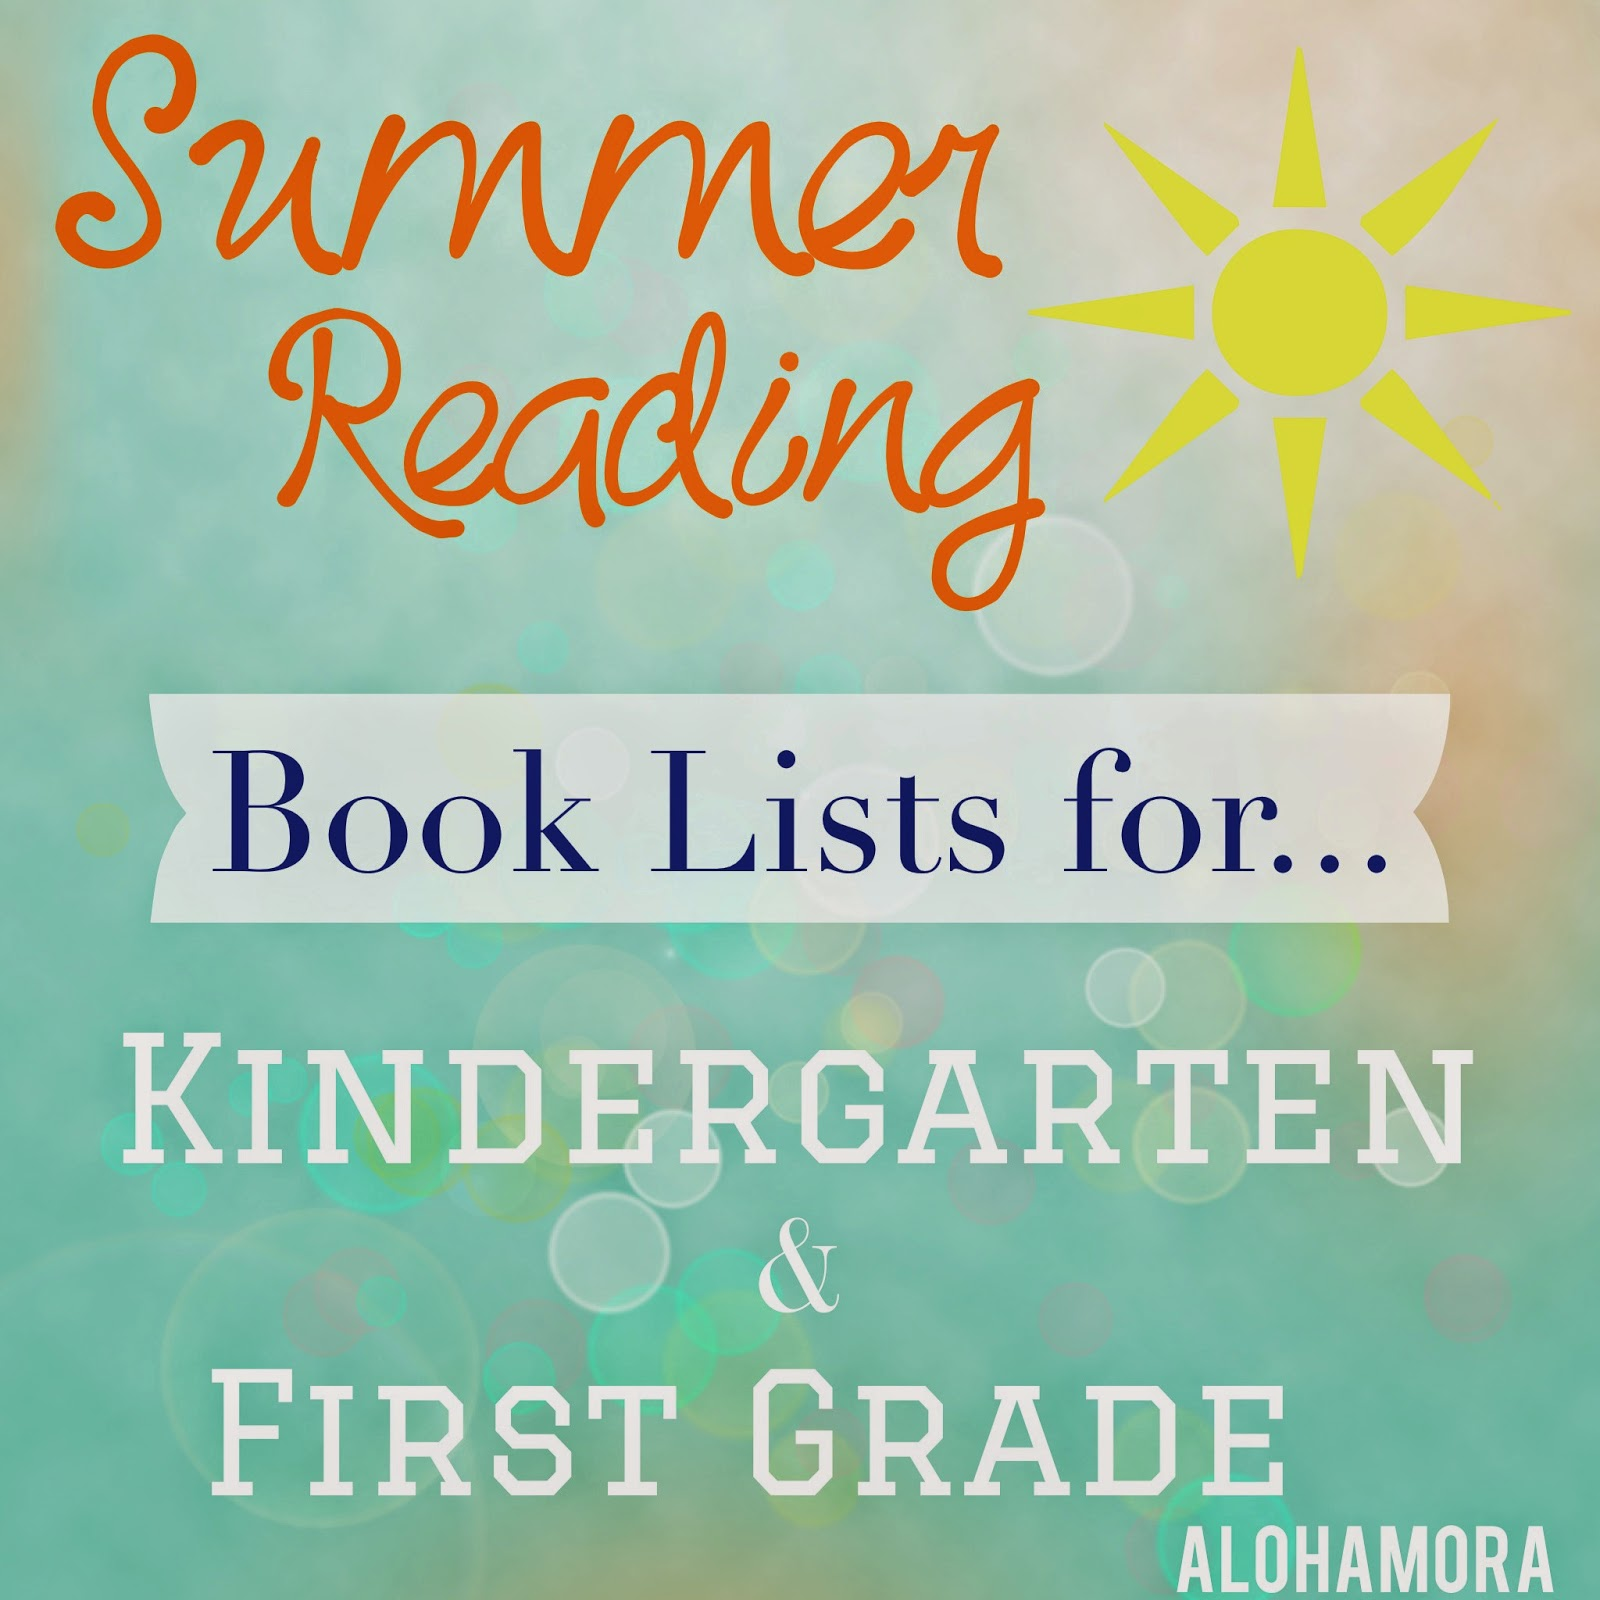 Summer Reading book lists for kids going into Kindergarten and First Grade.  Great books kids and adults will enjoy.  Alohamora Open a Book http://alohamoraopenabook.blogspot.com/